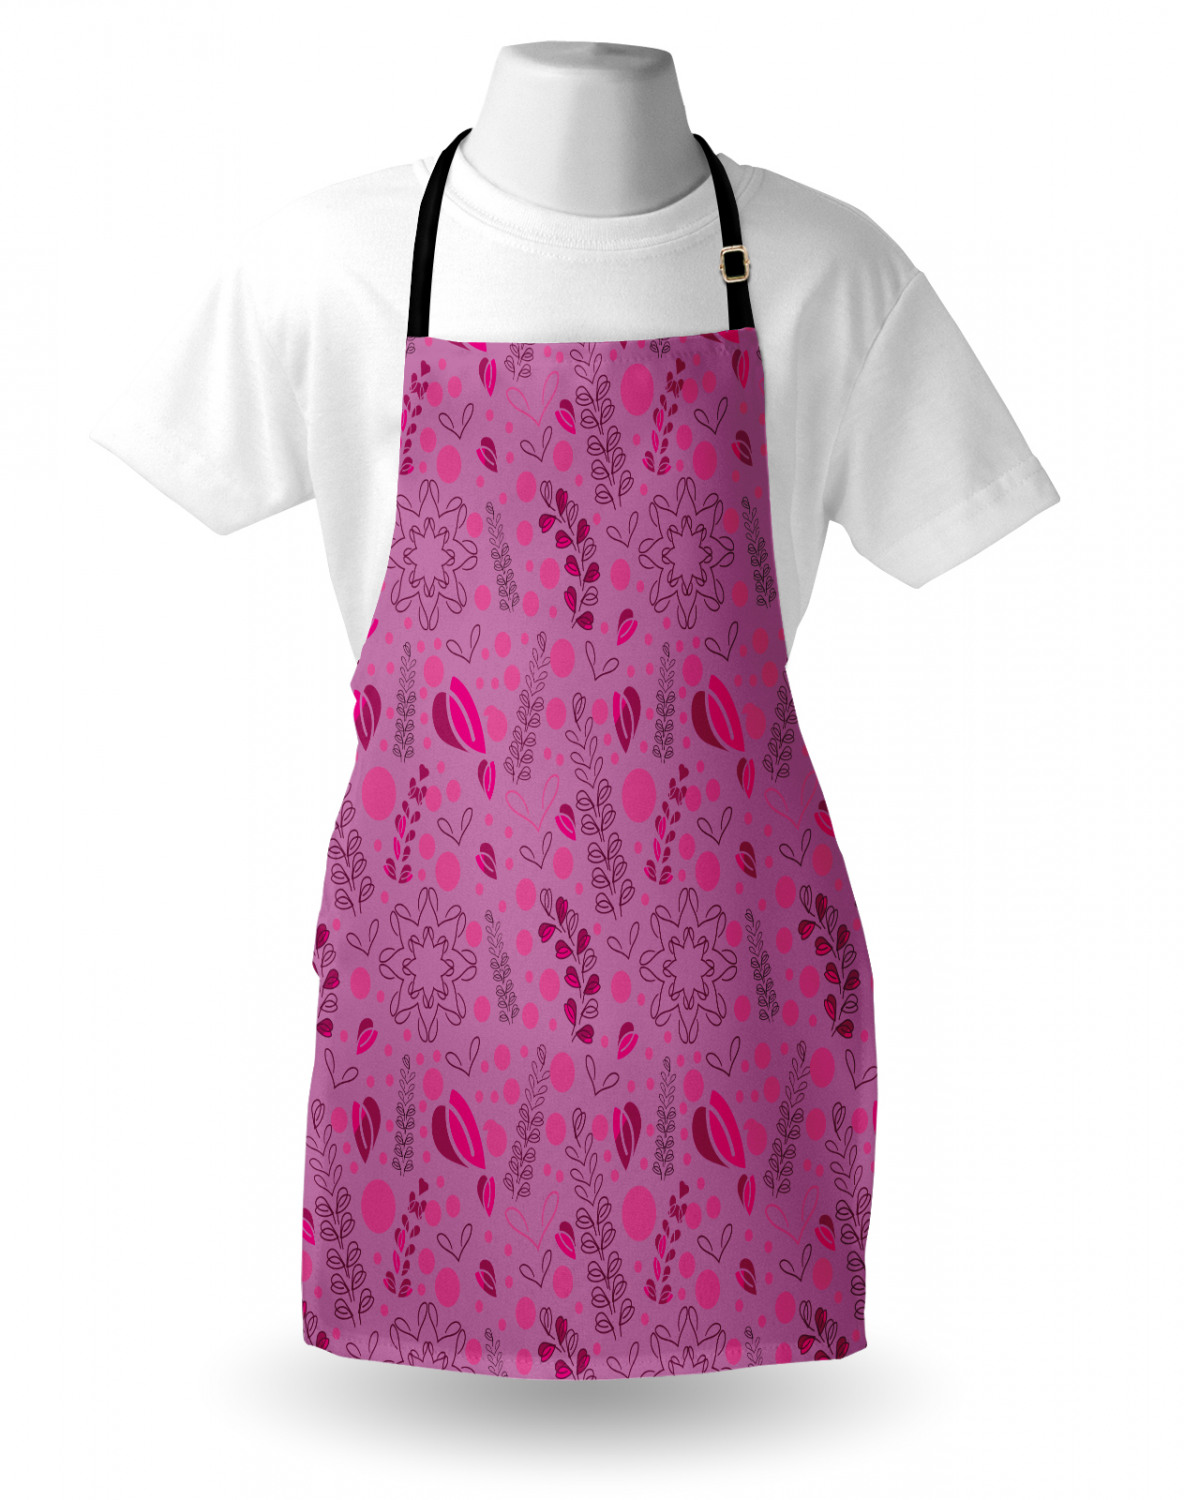 Ambesonne-Outdoor-Use-Apron-with-Adjustable-Neck-Strap-for-Gardening-and-Cooking miniatura 102